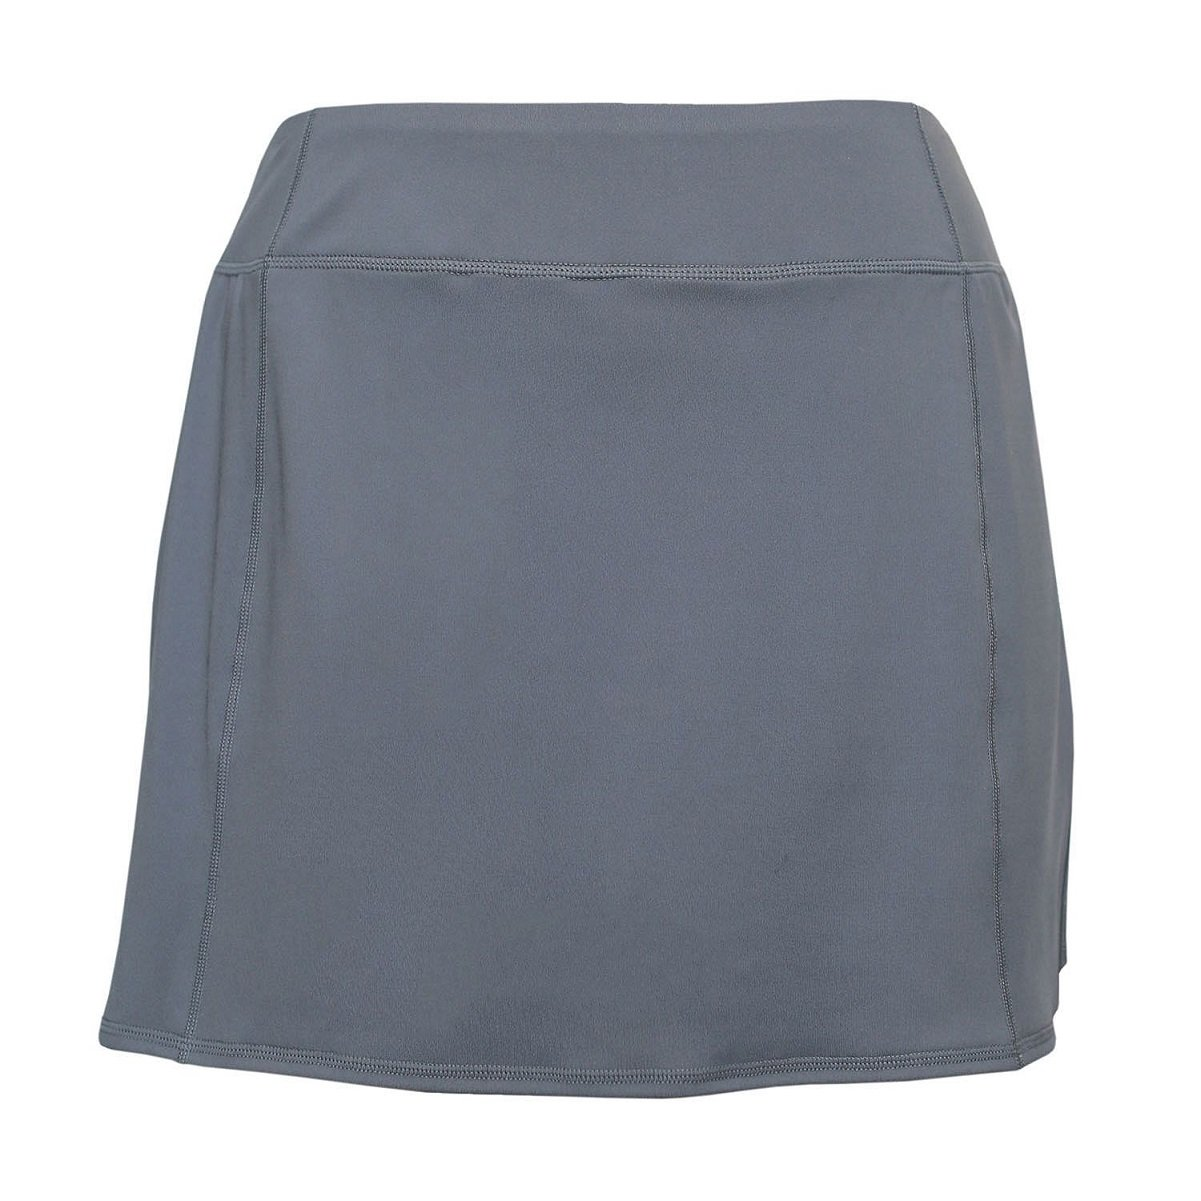 Tangerine Women's Active Skort with Perforated Trim (X-Large, Grey)